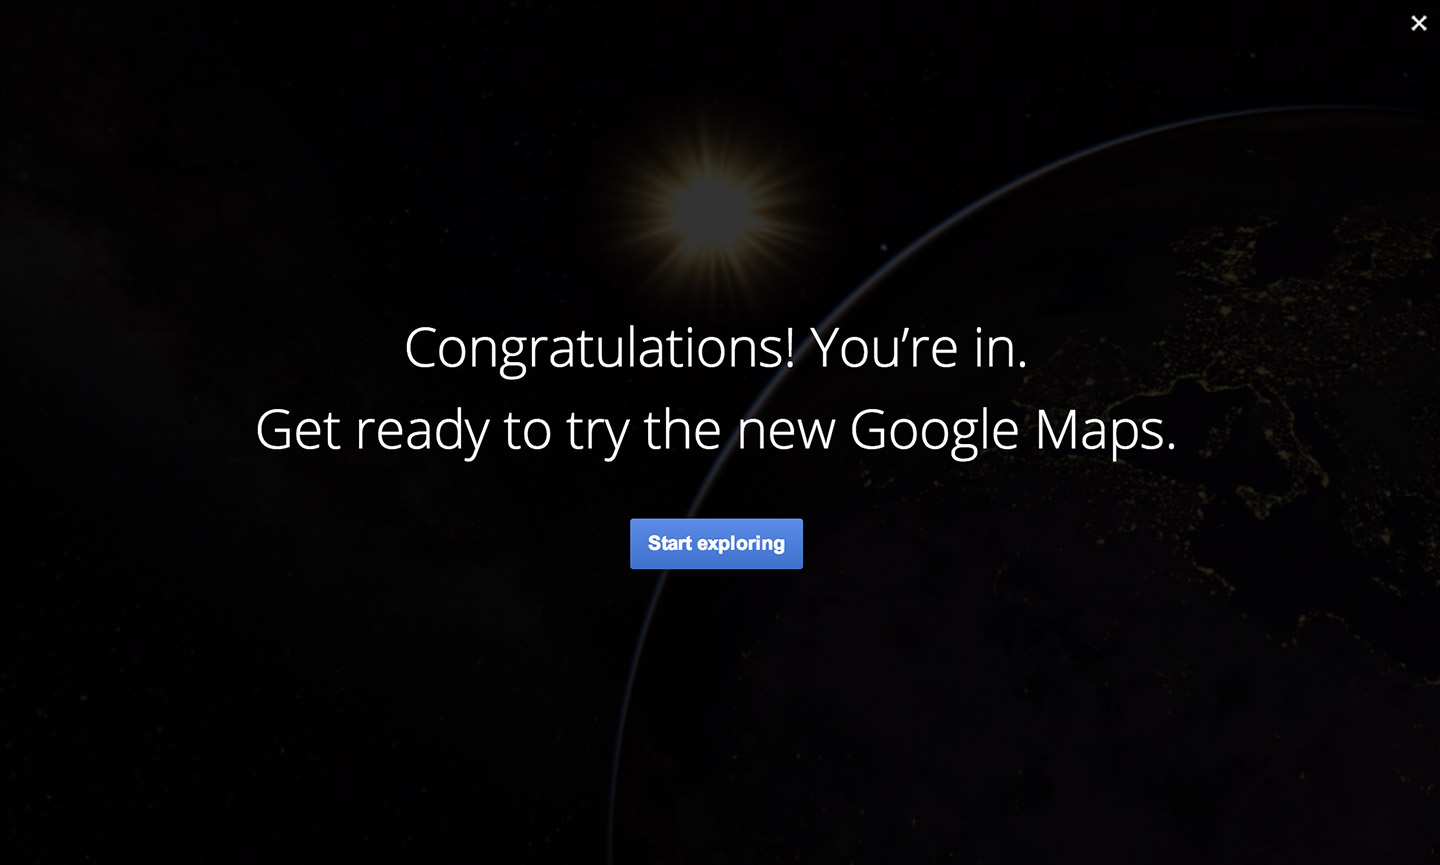 New Google Maps invite